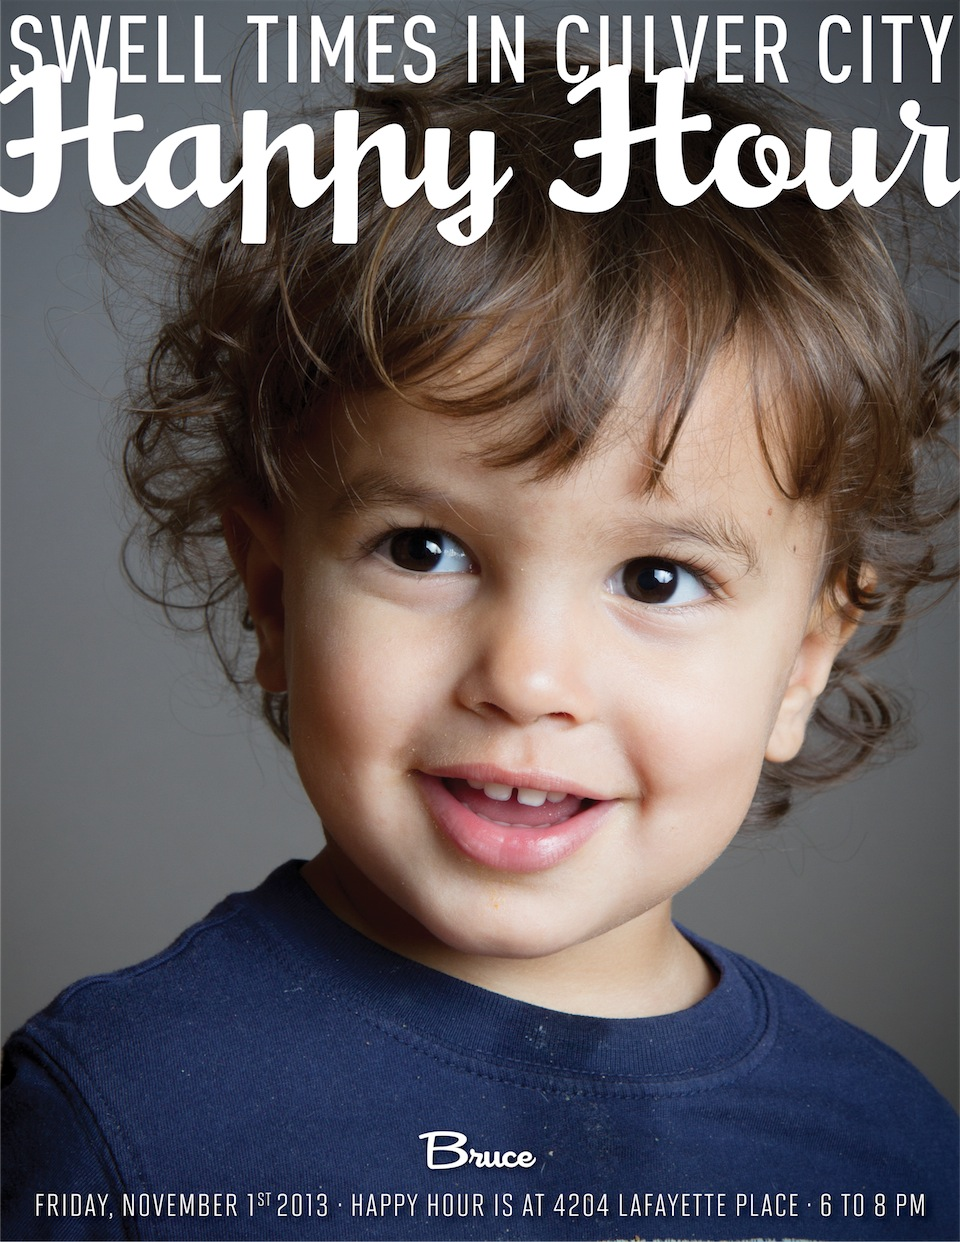 HappyHour_KidsPortraits_PartTwo_2013_10_31__23h122.jpeg